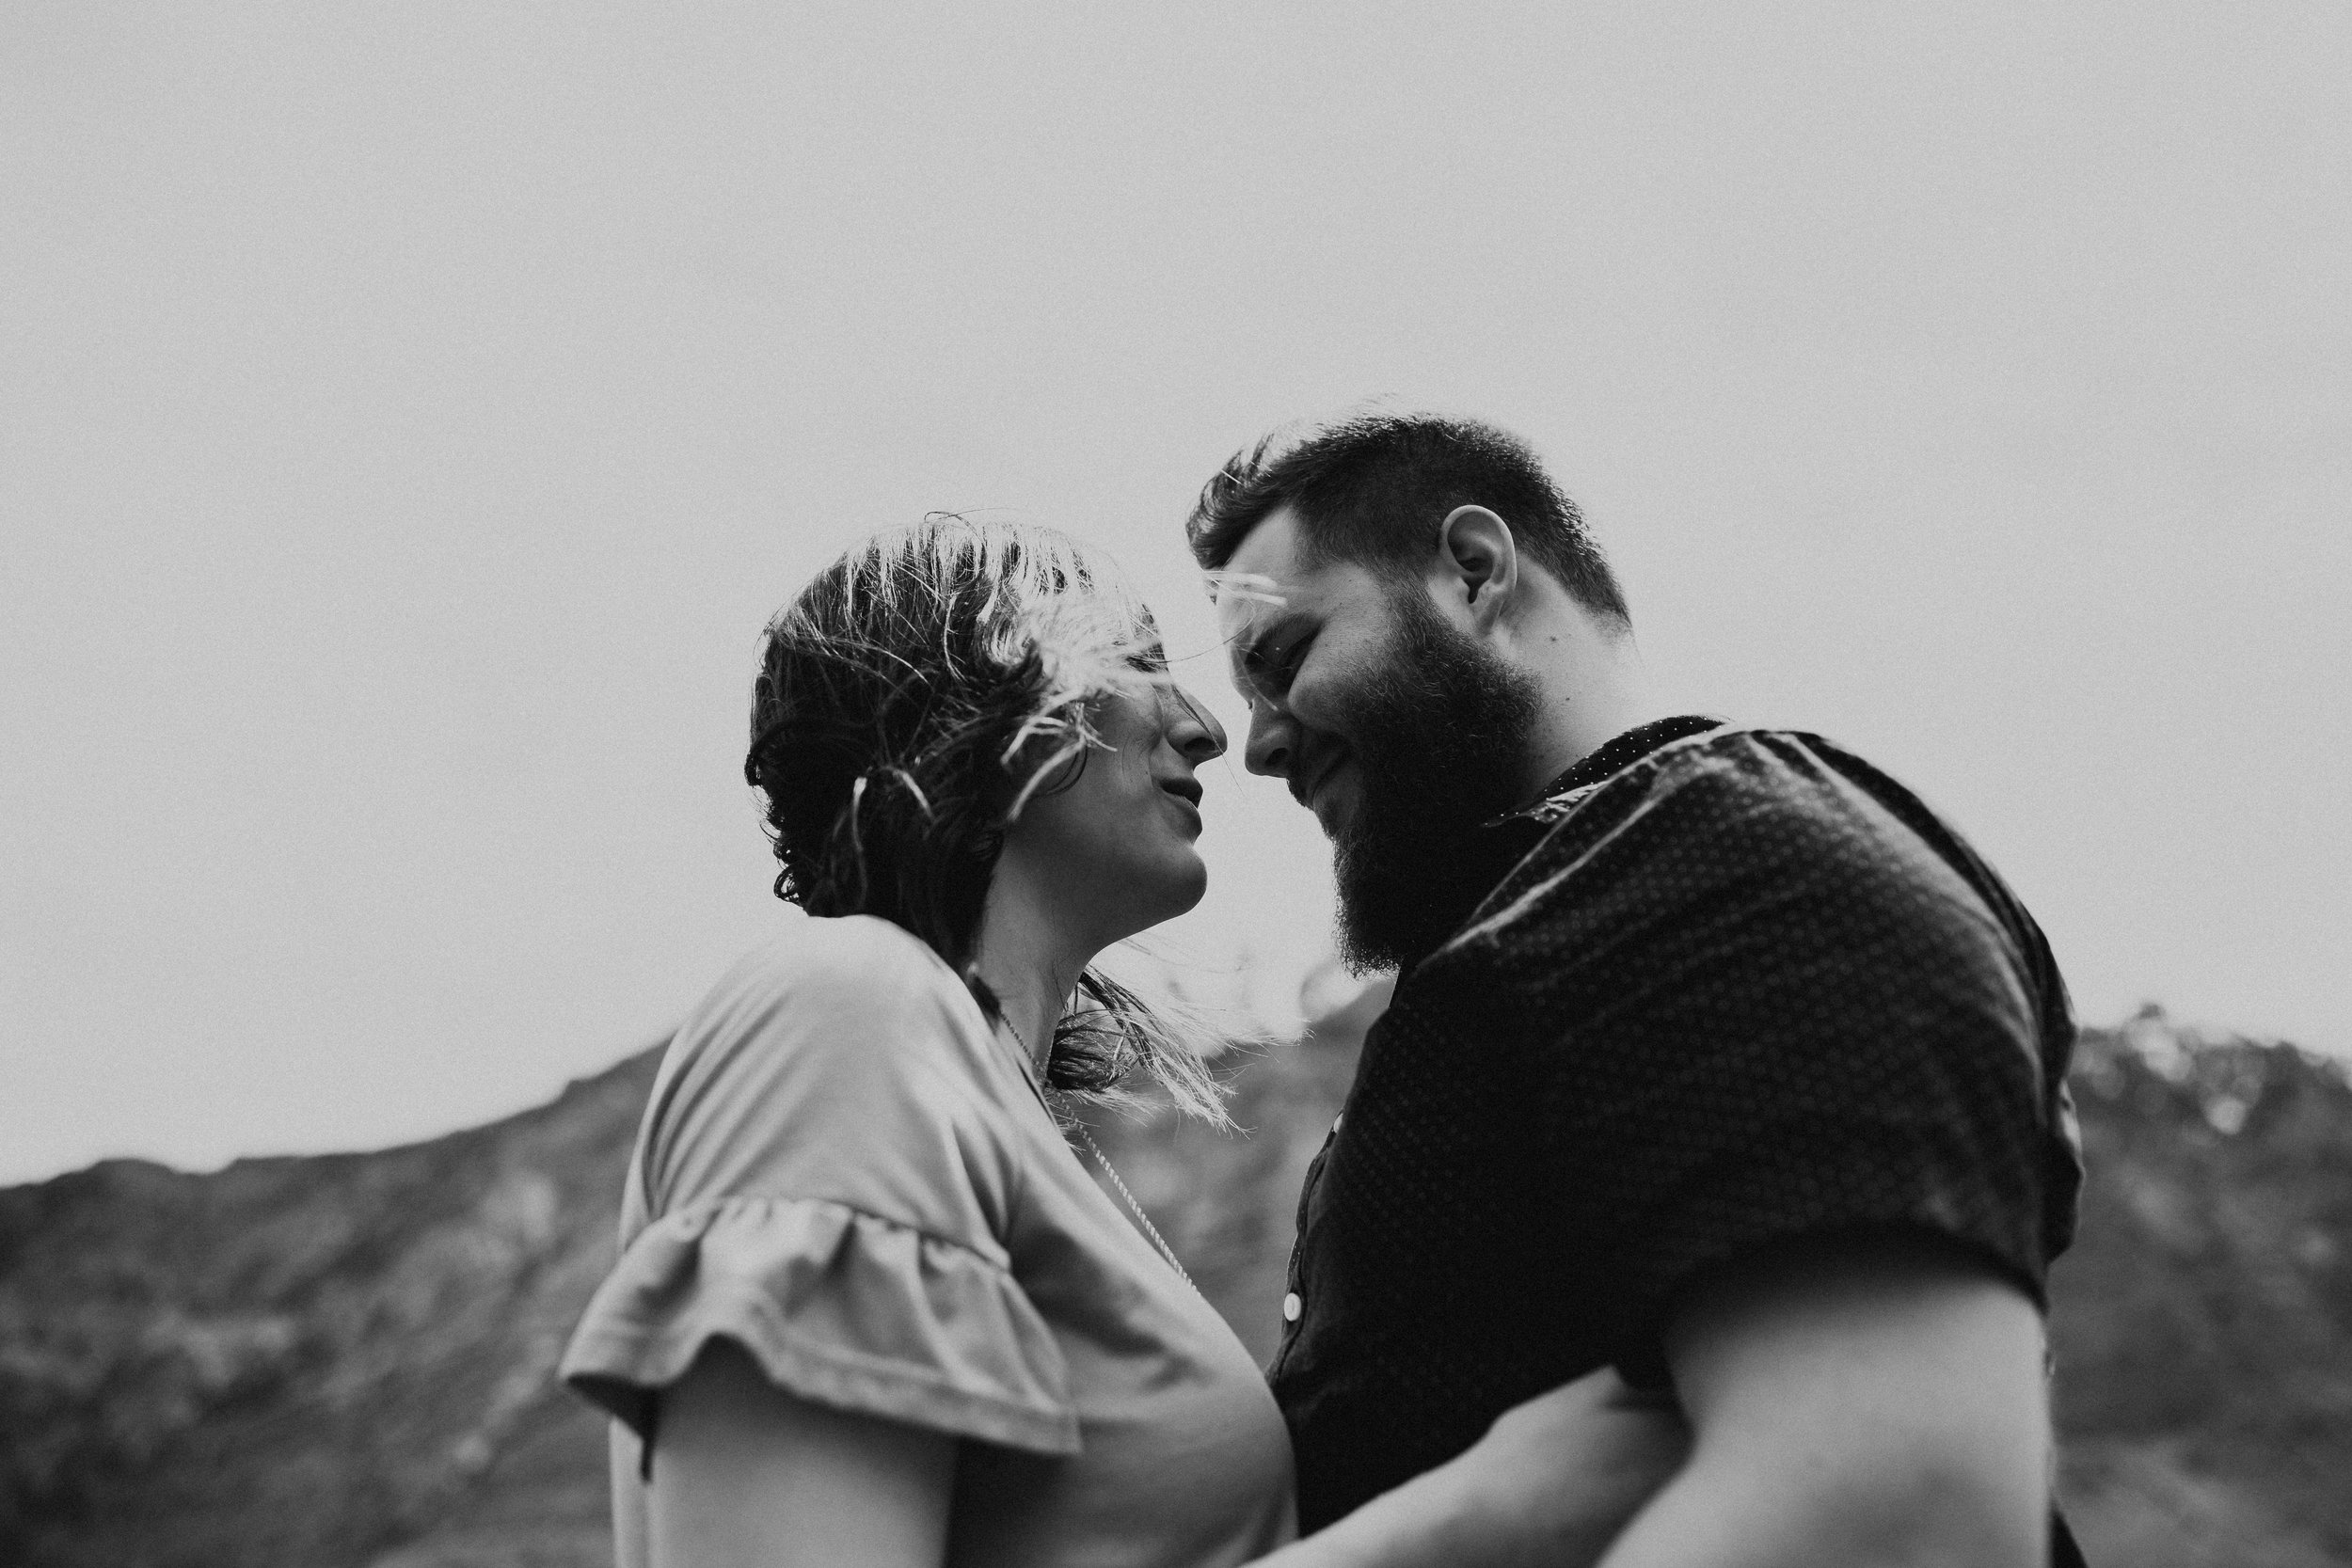 Windy mountain couples photos in Utah windflower field black and white